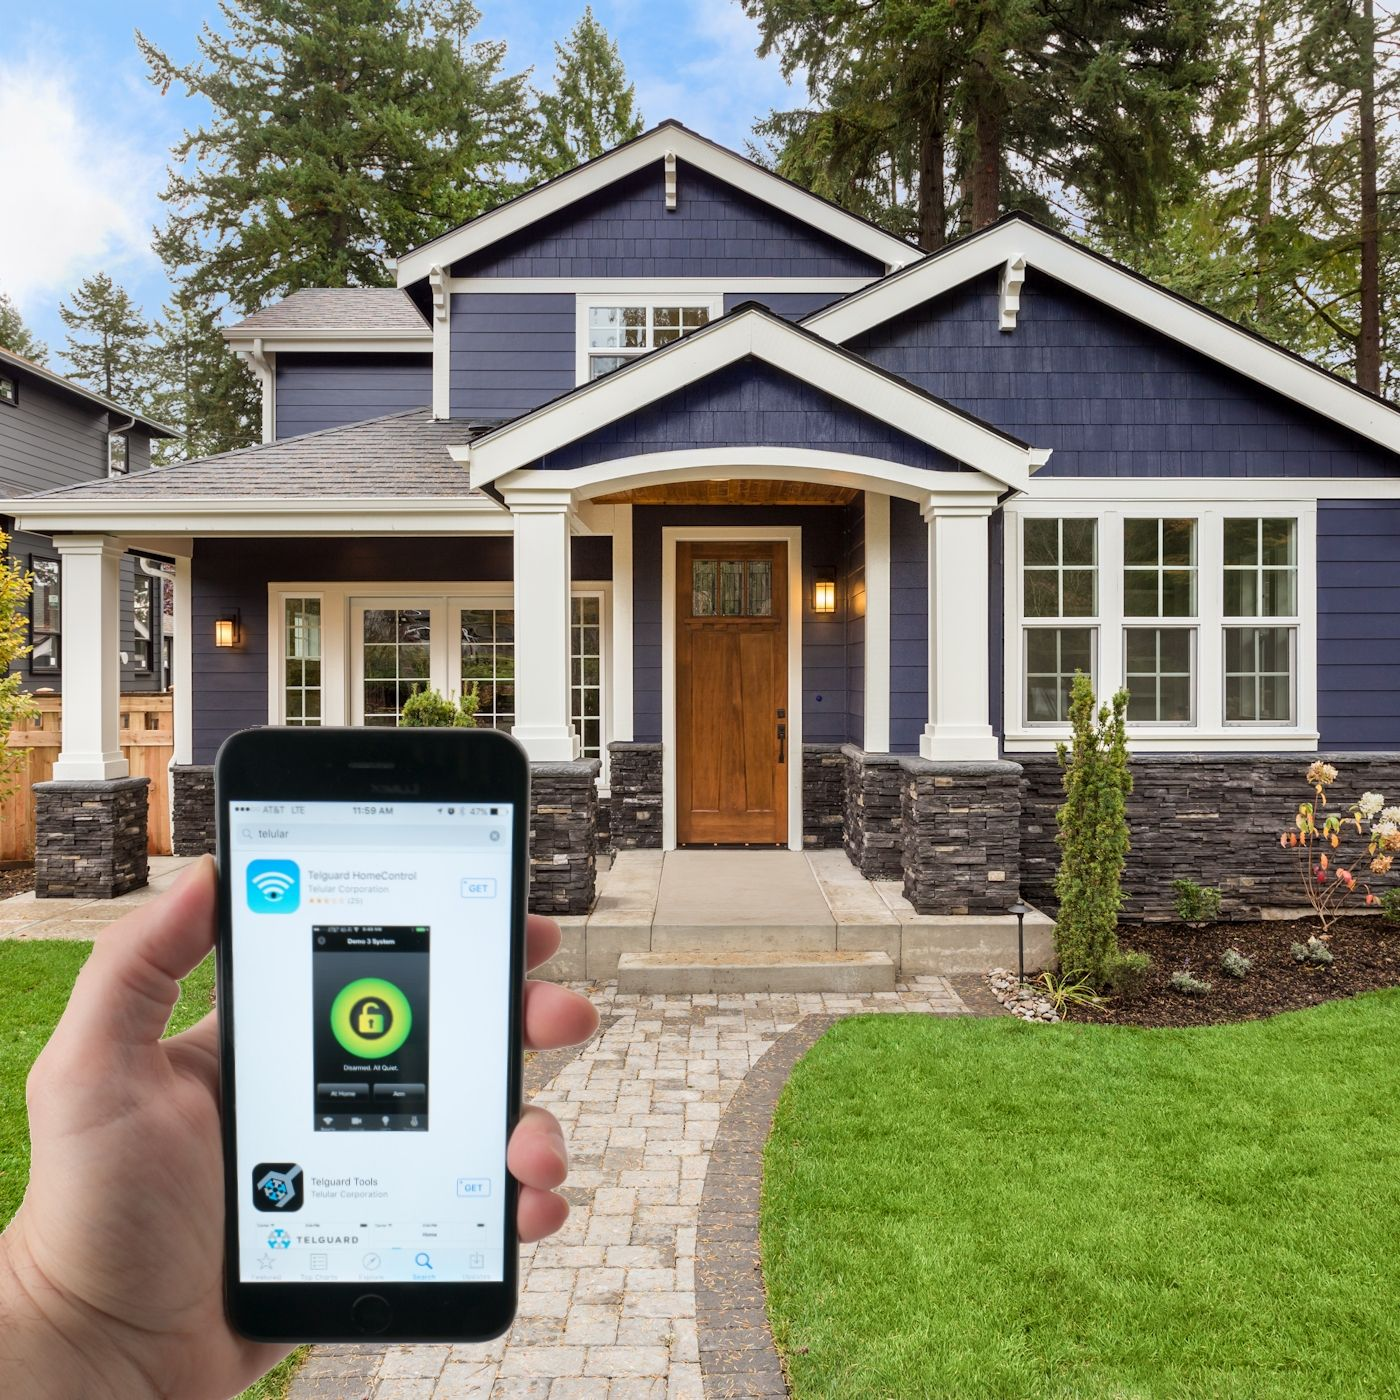 wireless alarm monitoring with homecontrol flex by Premier Security